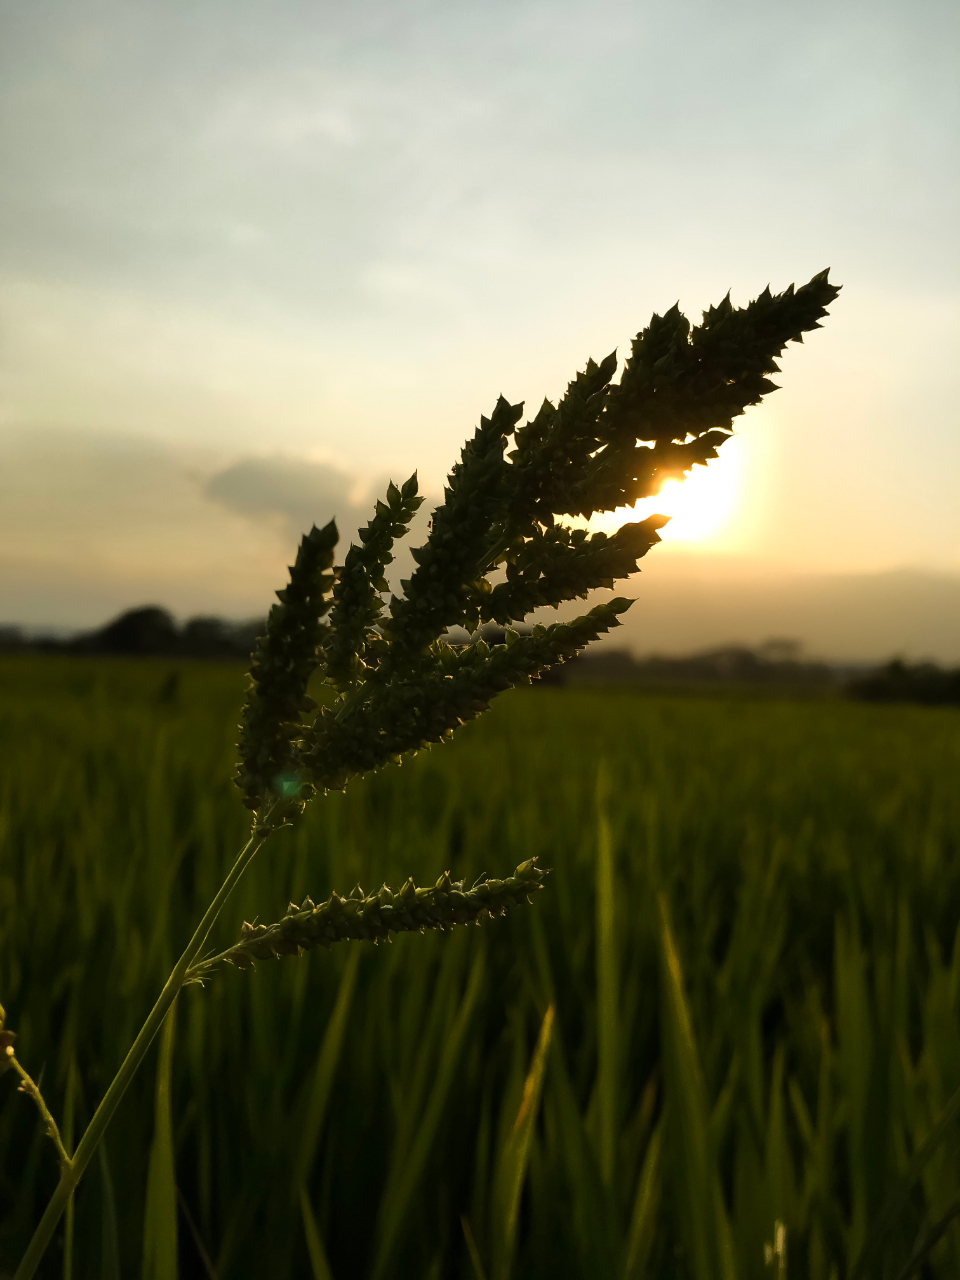 Paddy field Sunset Golden-hour Light Grass farm grass sunset sn leaf nature